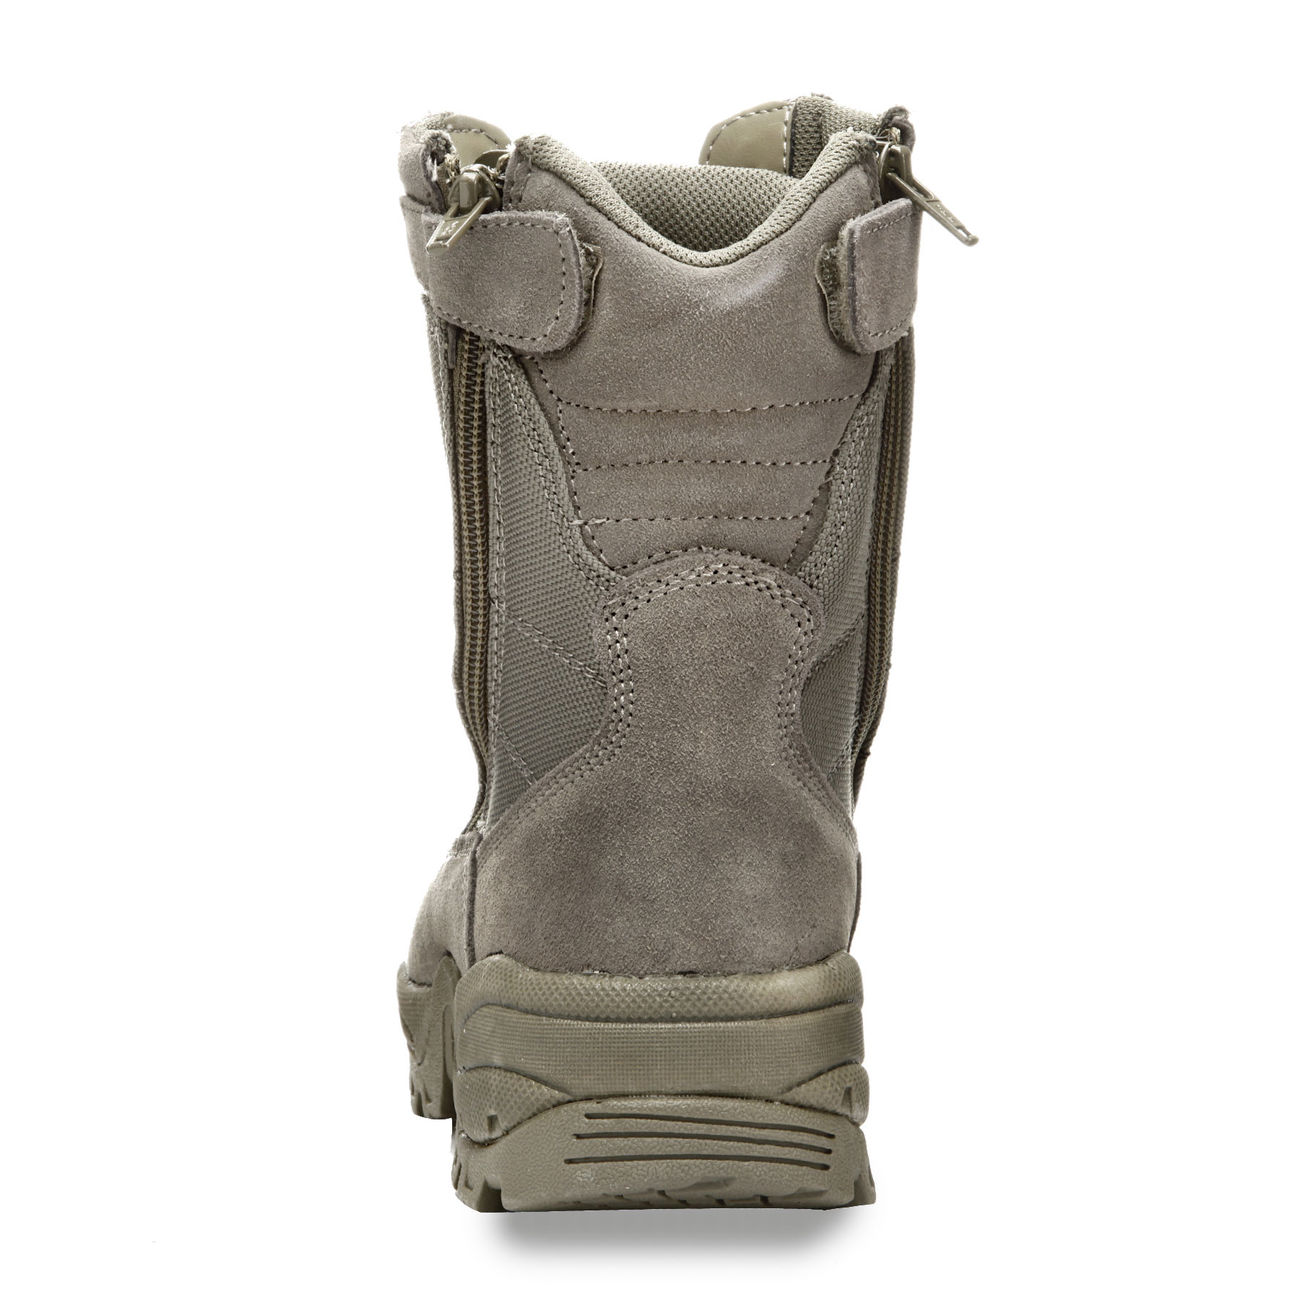 Mil-Tec Tactical Boot Two-Zip foliage 2